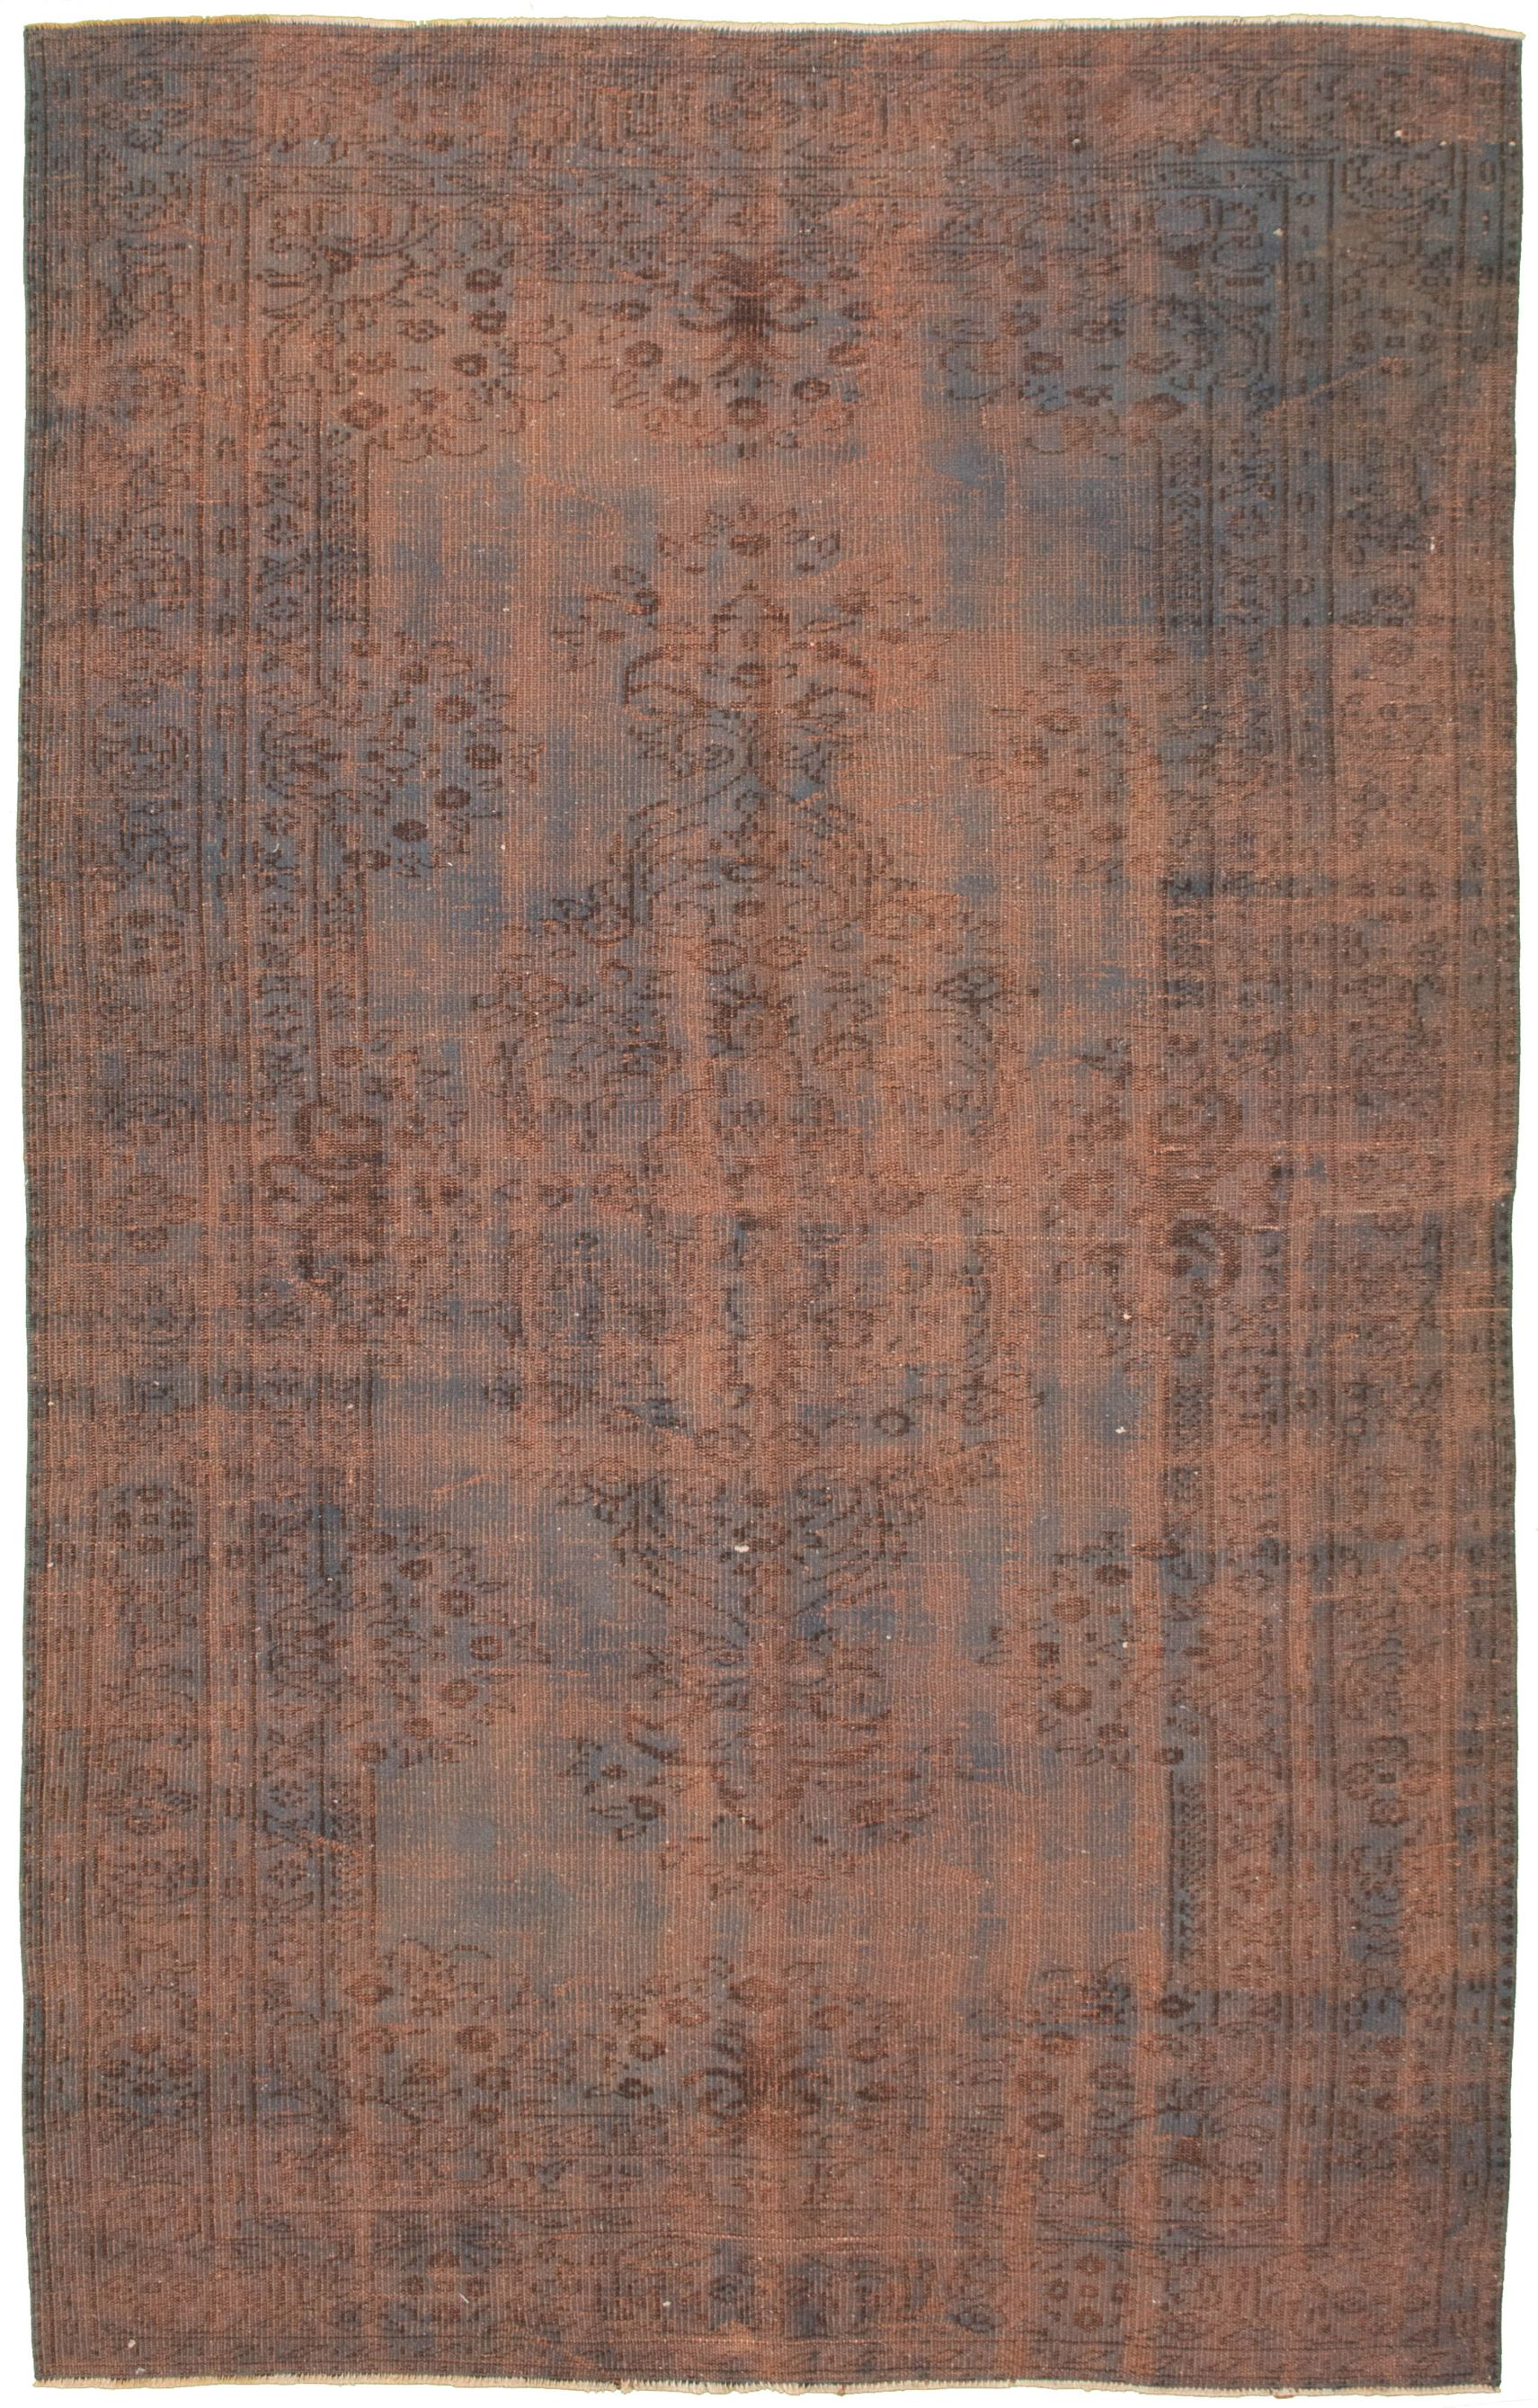 """Hand-knotted Color Transition Blue Wool Rug 6'2"""" x 9'8"""" Size: 6'2"""" x 9'8"""""""